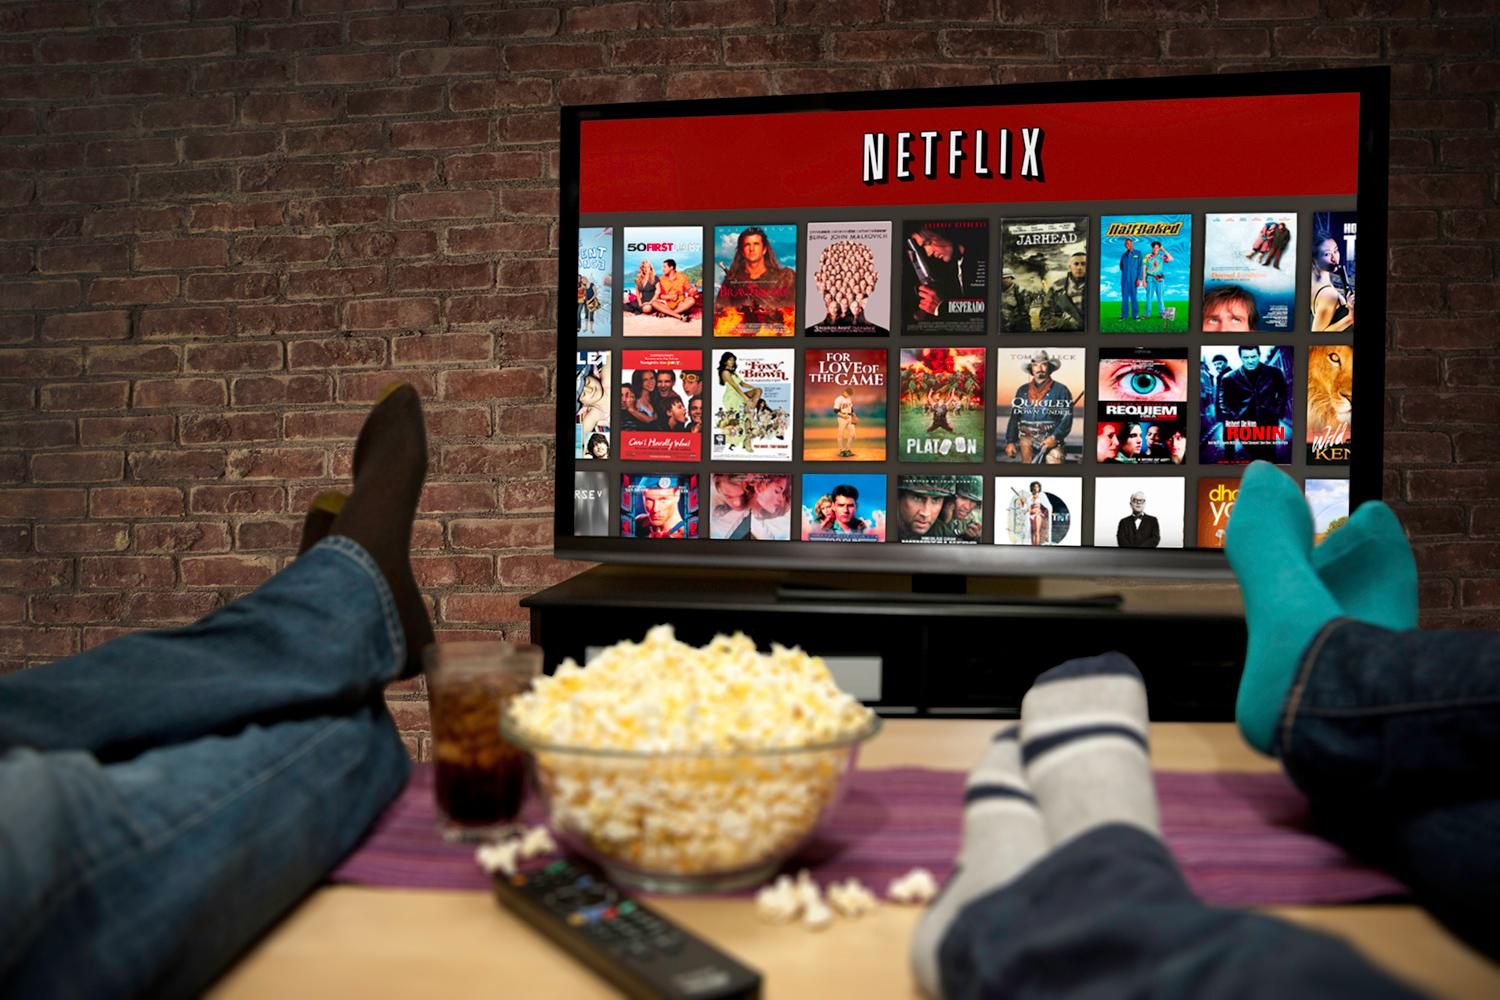 netflix movies expiring jan 2014 Netflix Cracking Down On Users That Use US Version From UK